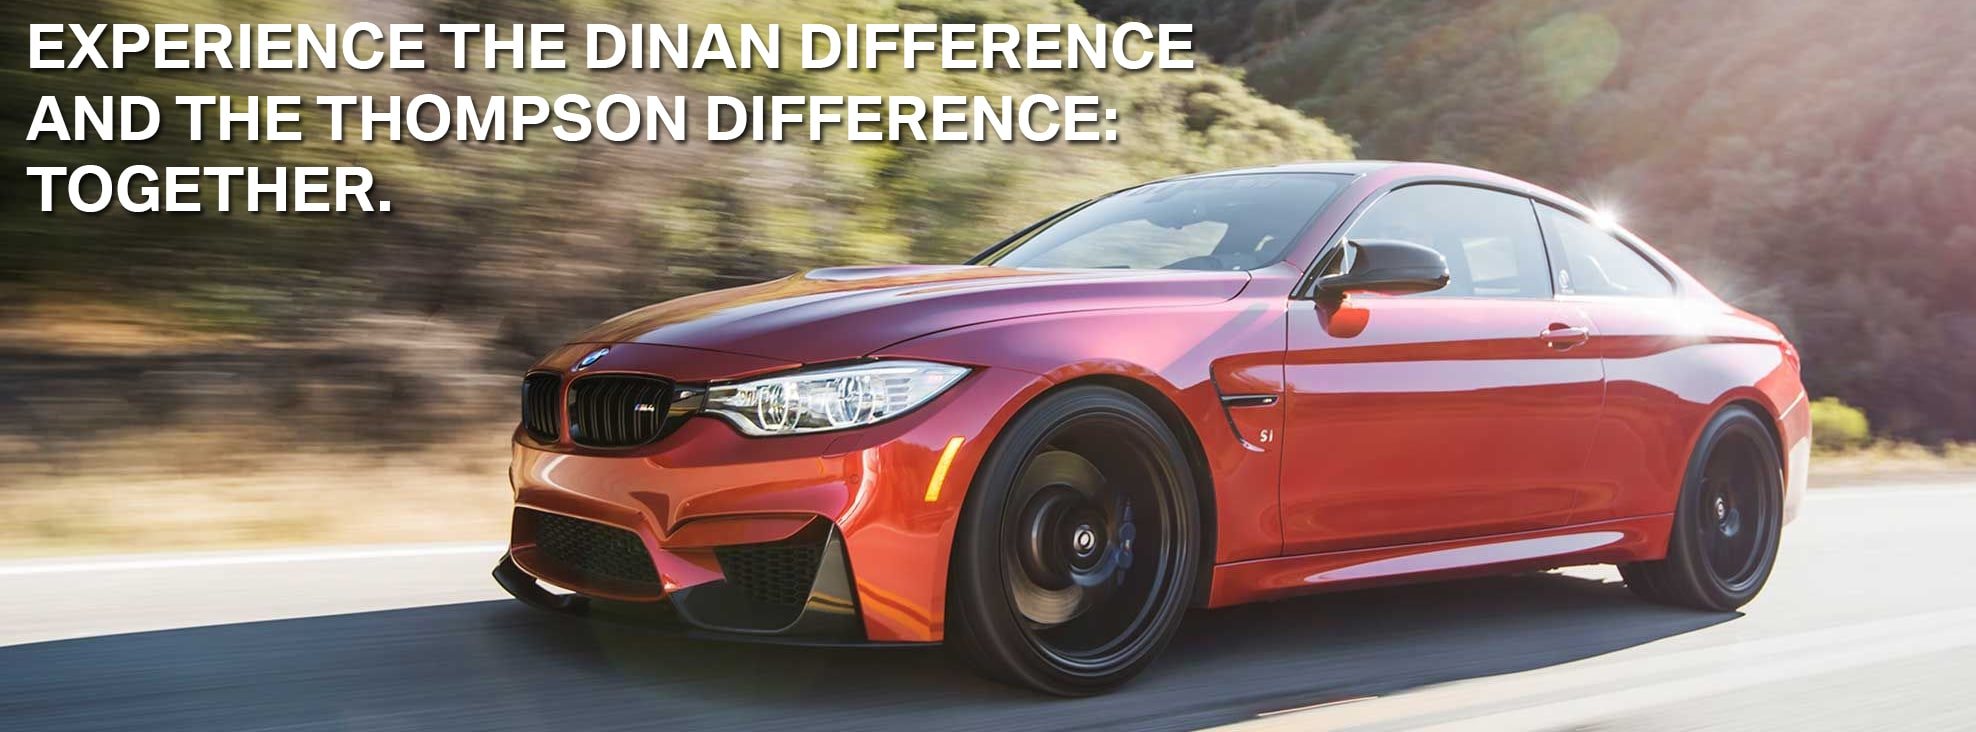 Dinan Parts Doylestown Performance Auto Parts At Thompson Bmw